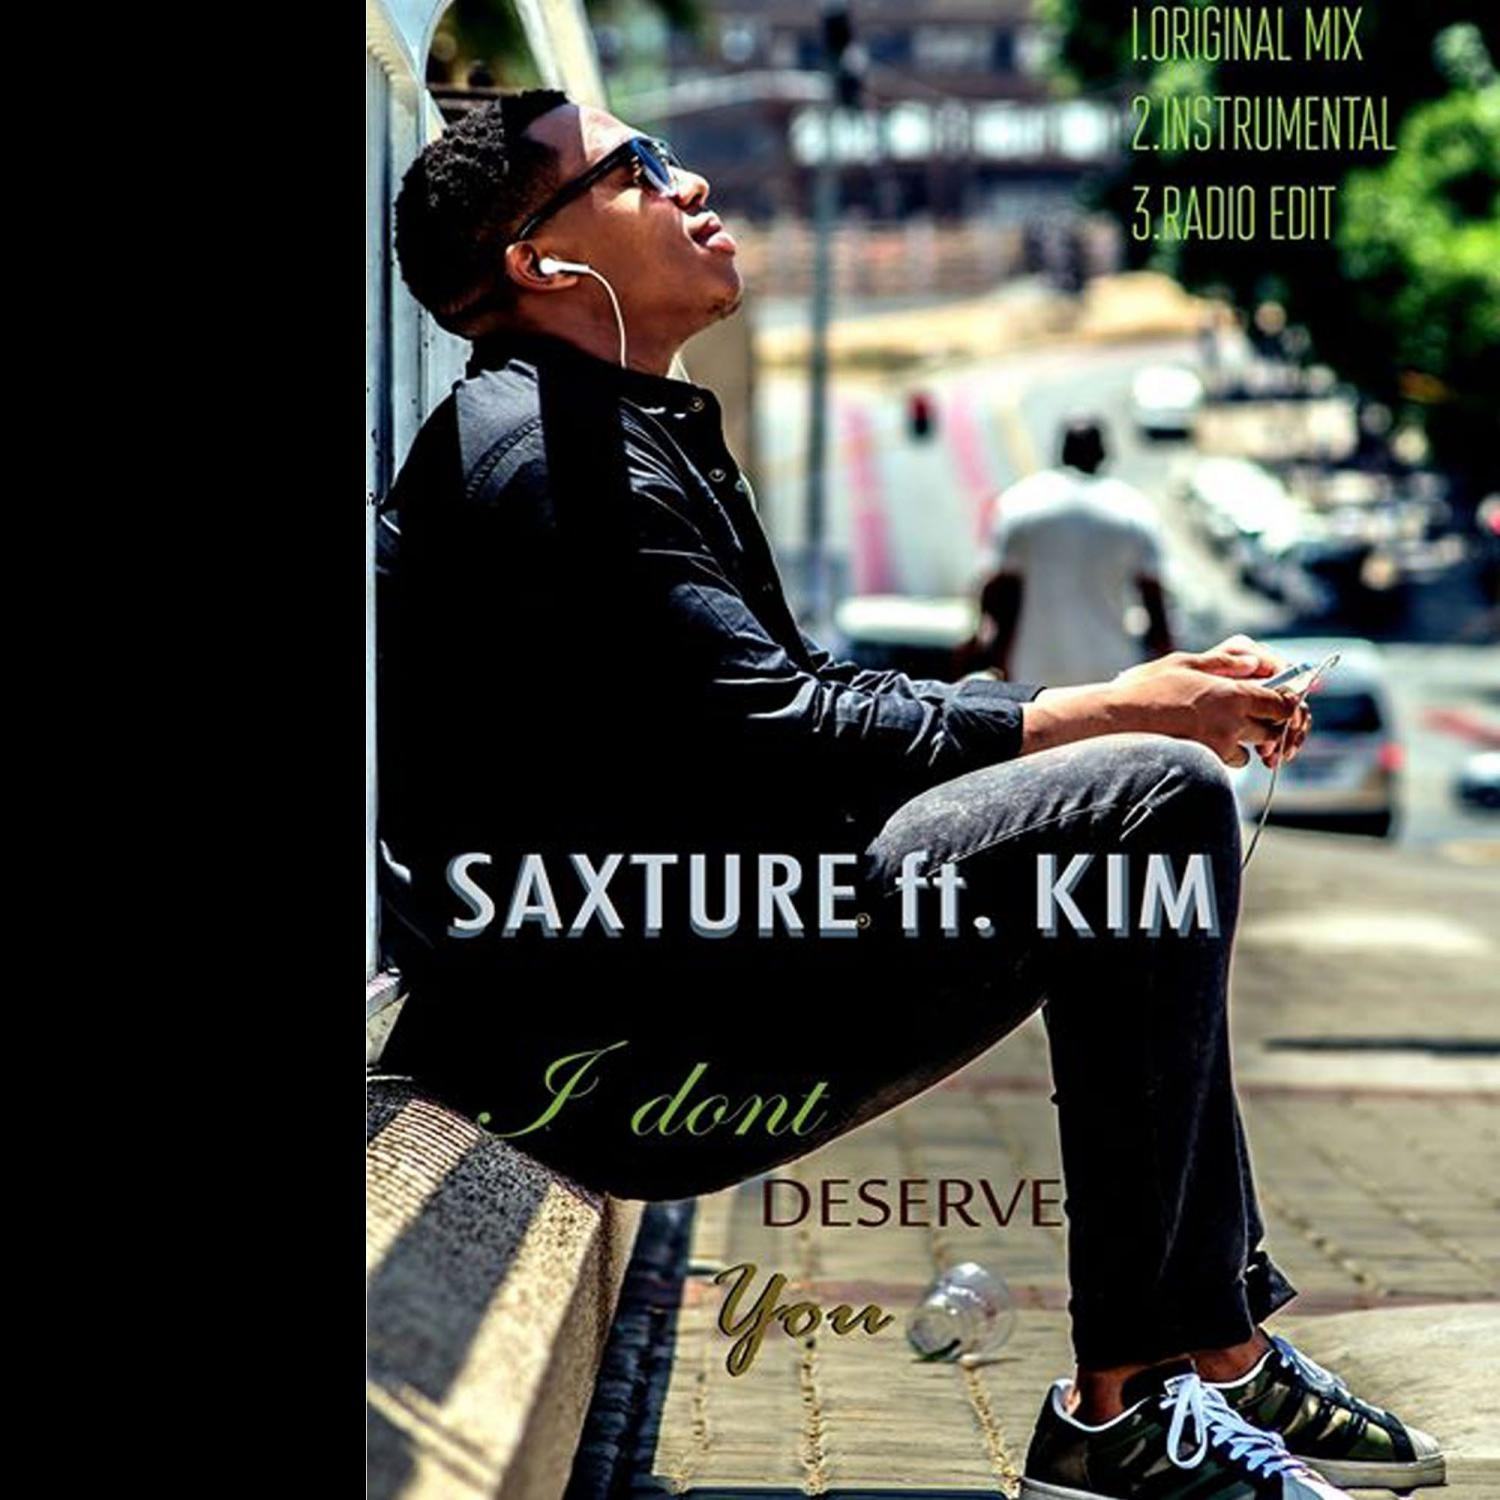 Saxture, Kim - I Dont Deserve You (feat. Kim) (Original)